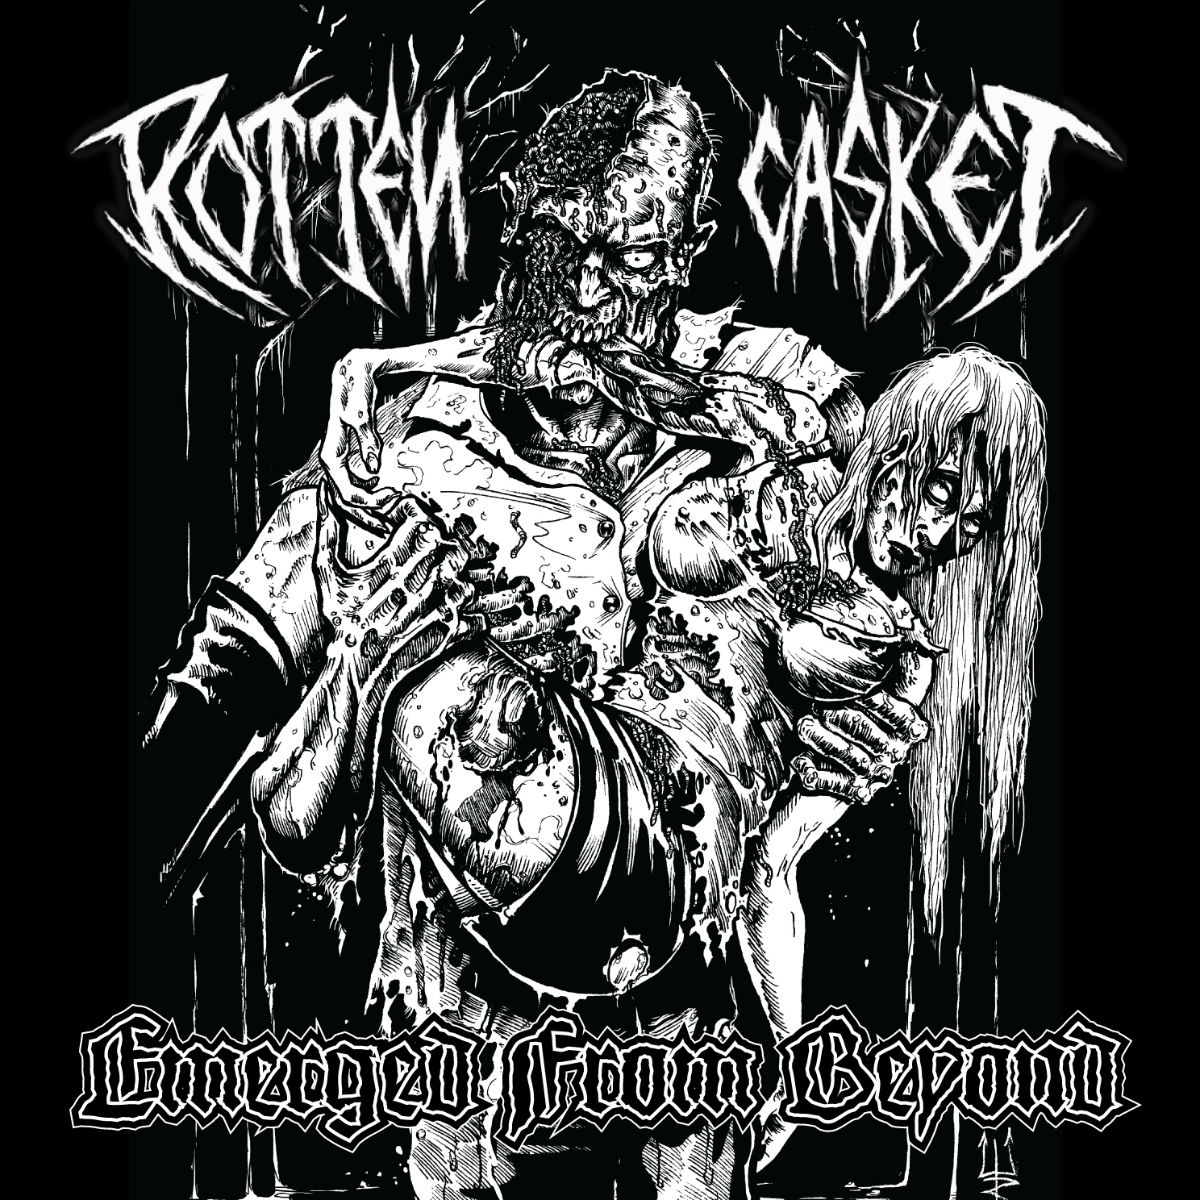 rotten casket – emerged from beyond